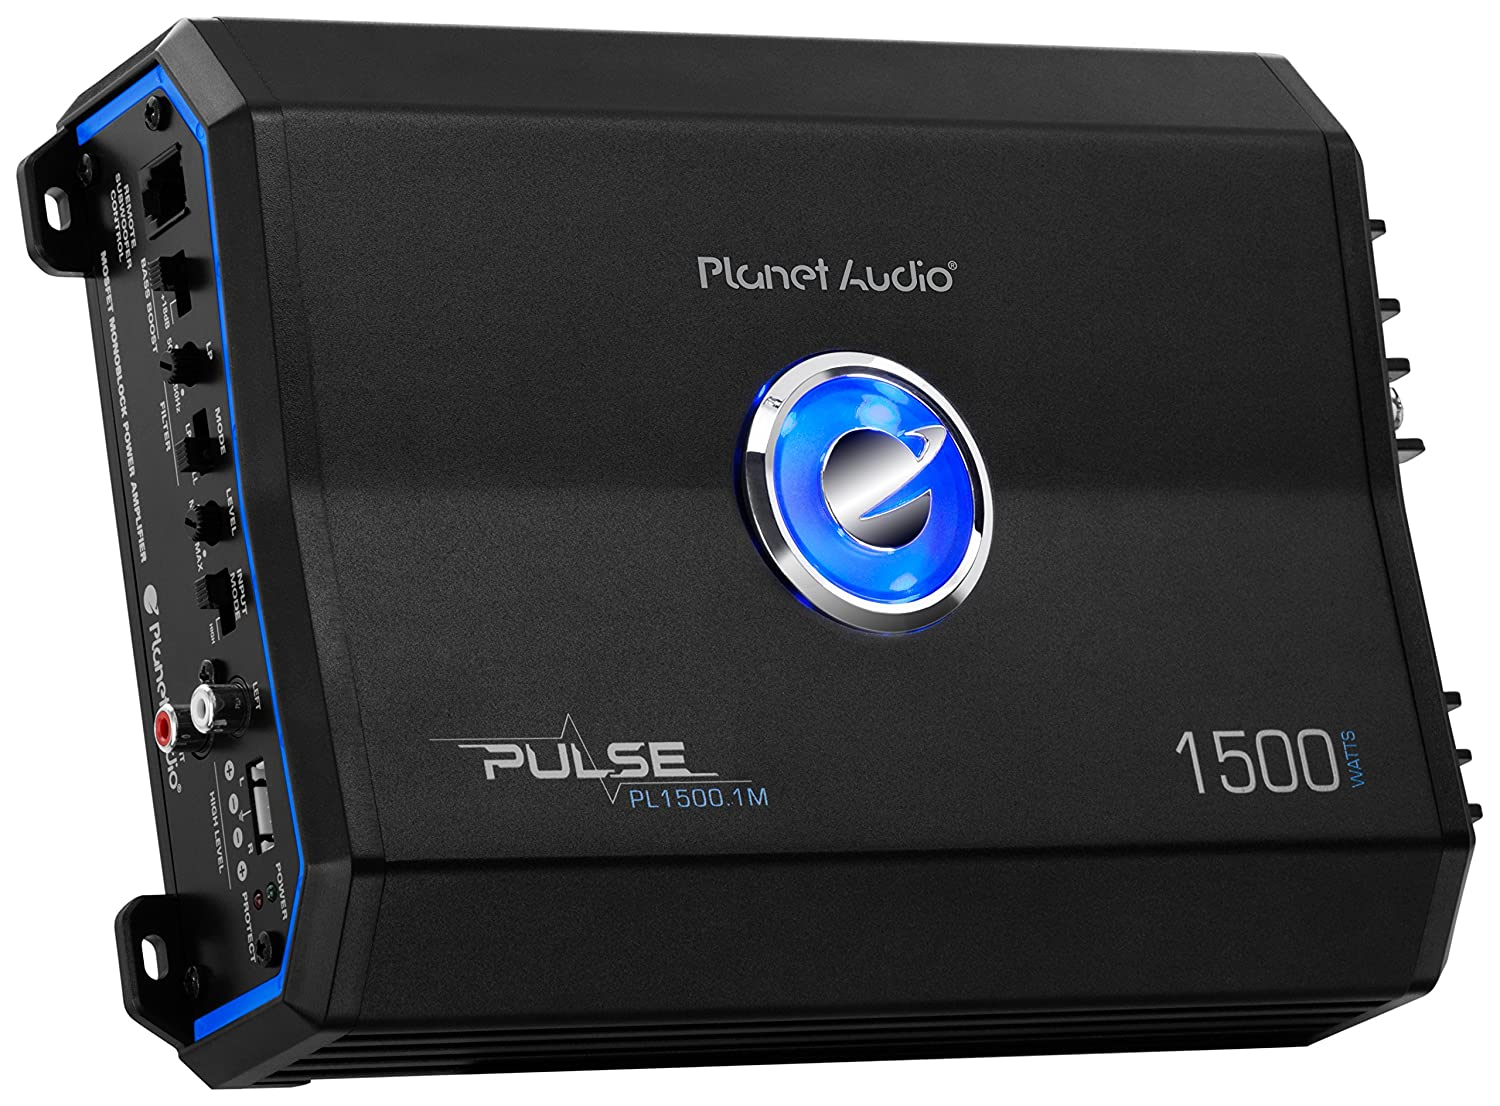 Planet Audio Pl15001m Pulse 1500 Watt 2 Ohm Stable Collection Scheme Power Amplifier High Mosfets Class A B Monoblock Mosfet Car With Remote Subwoofer Control